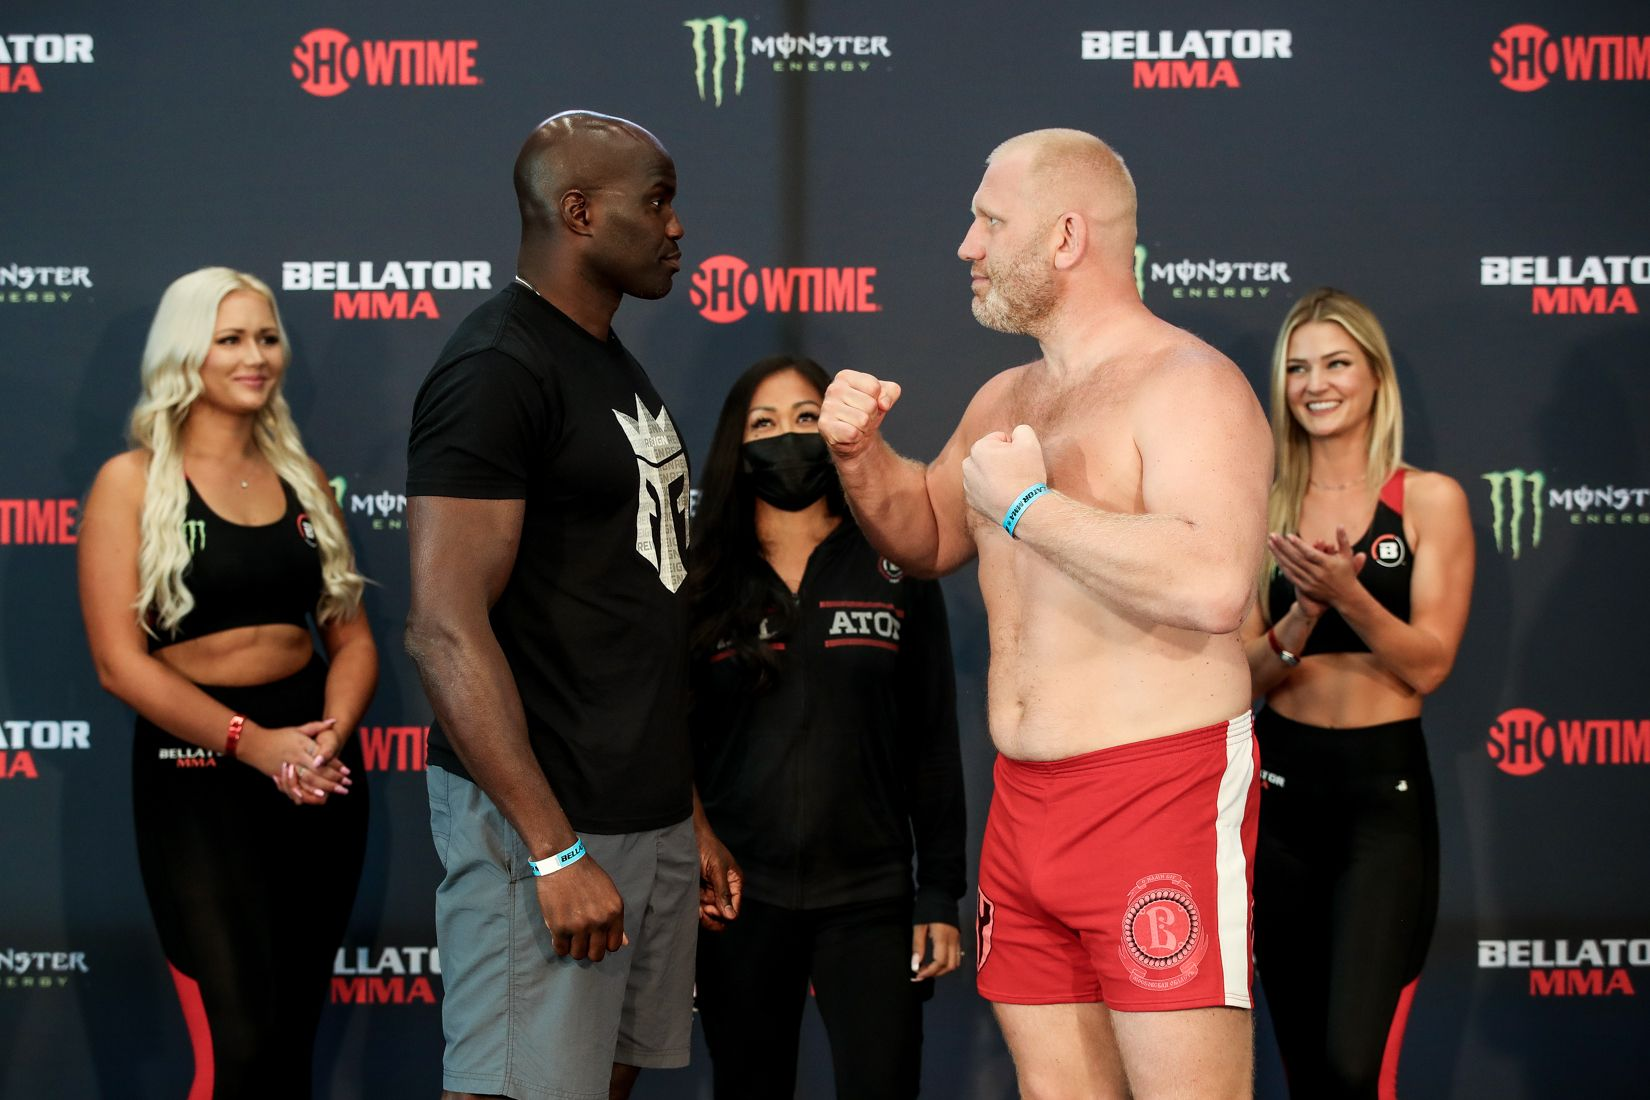 Cheick Kongo and Sergei Kharitonov face off at the Bellator 265 weigh-ins.